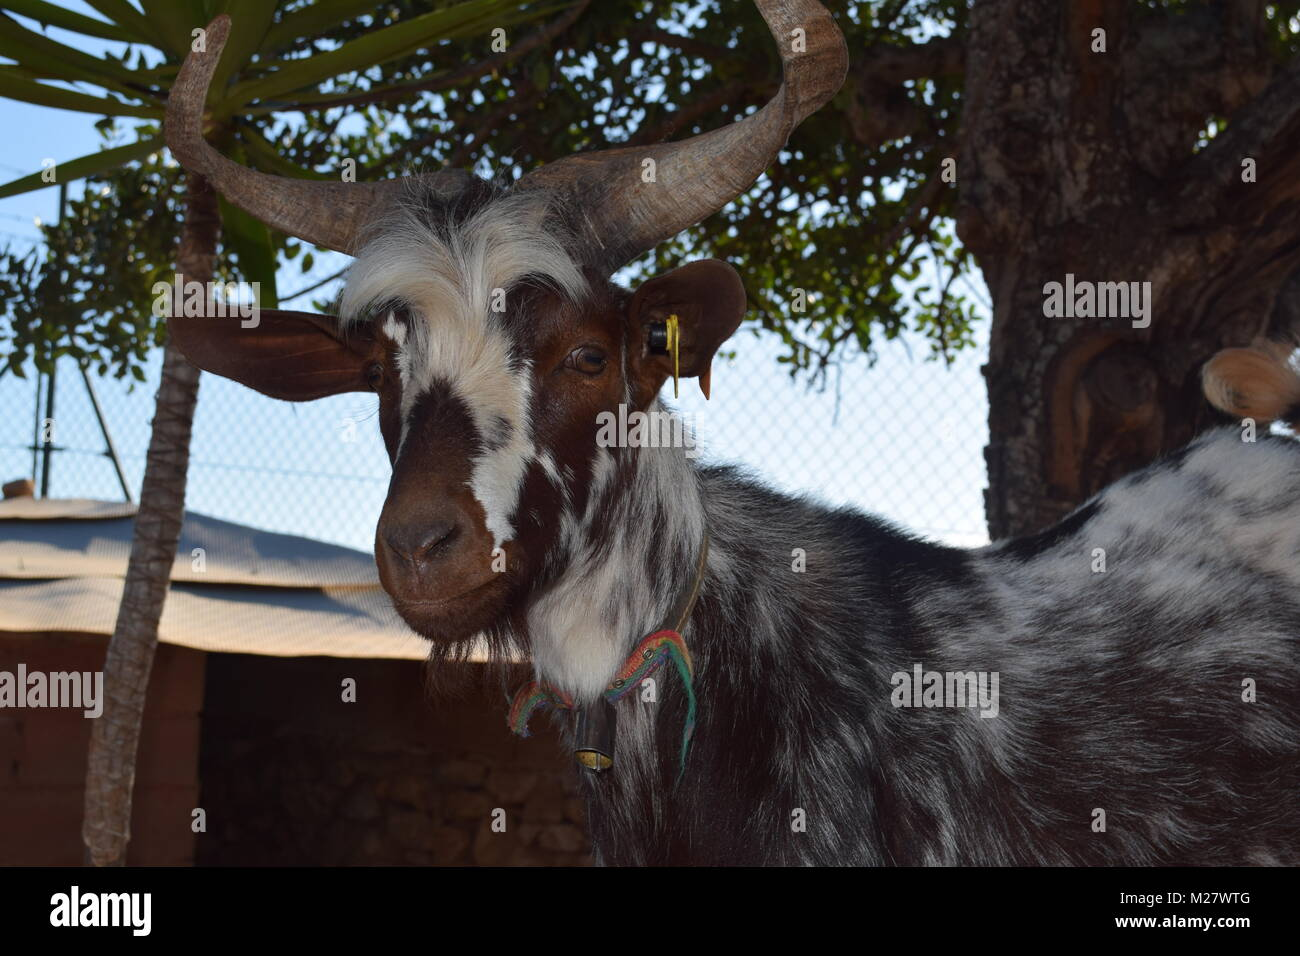 A young goat, jumping the walls of the farm. - Stock Image